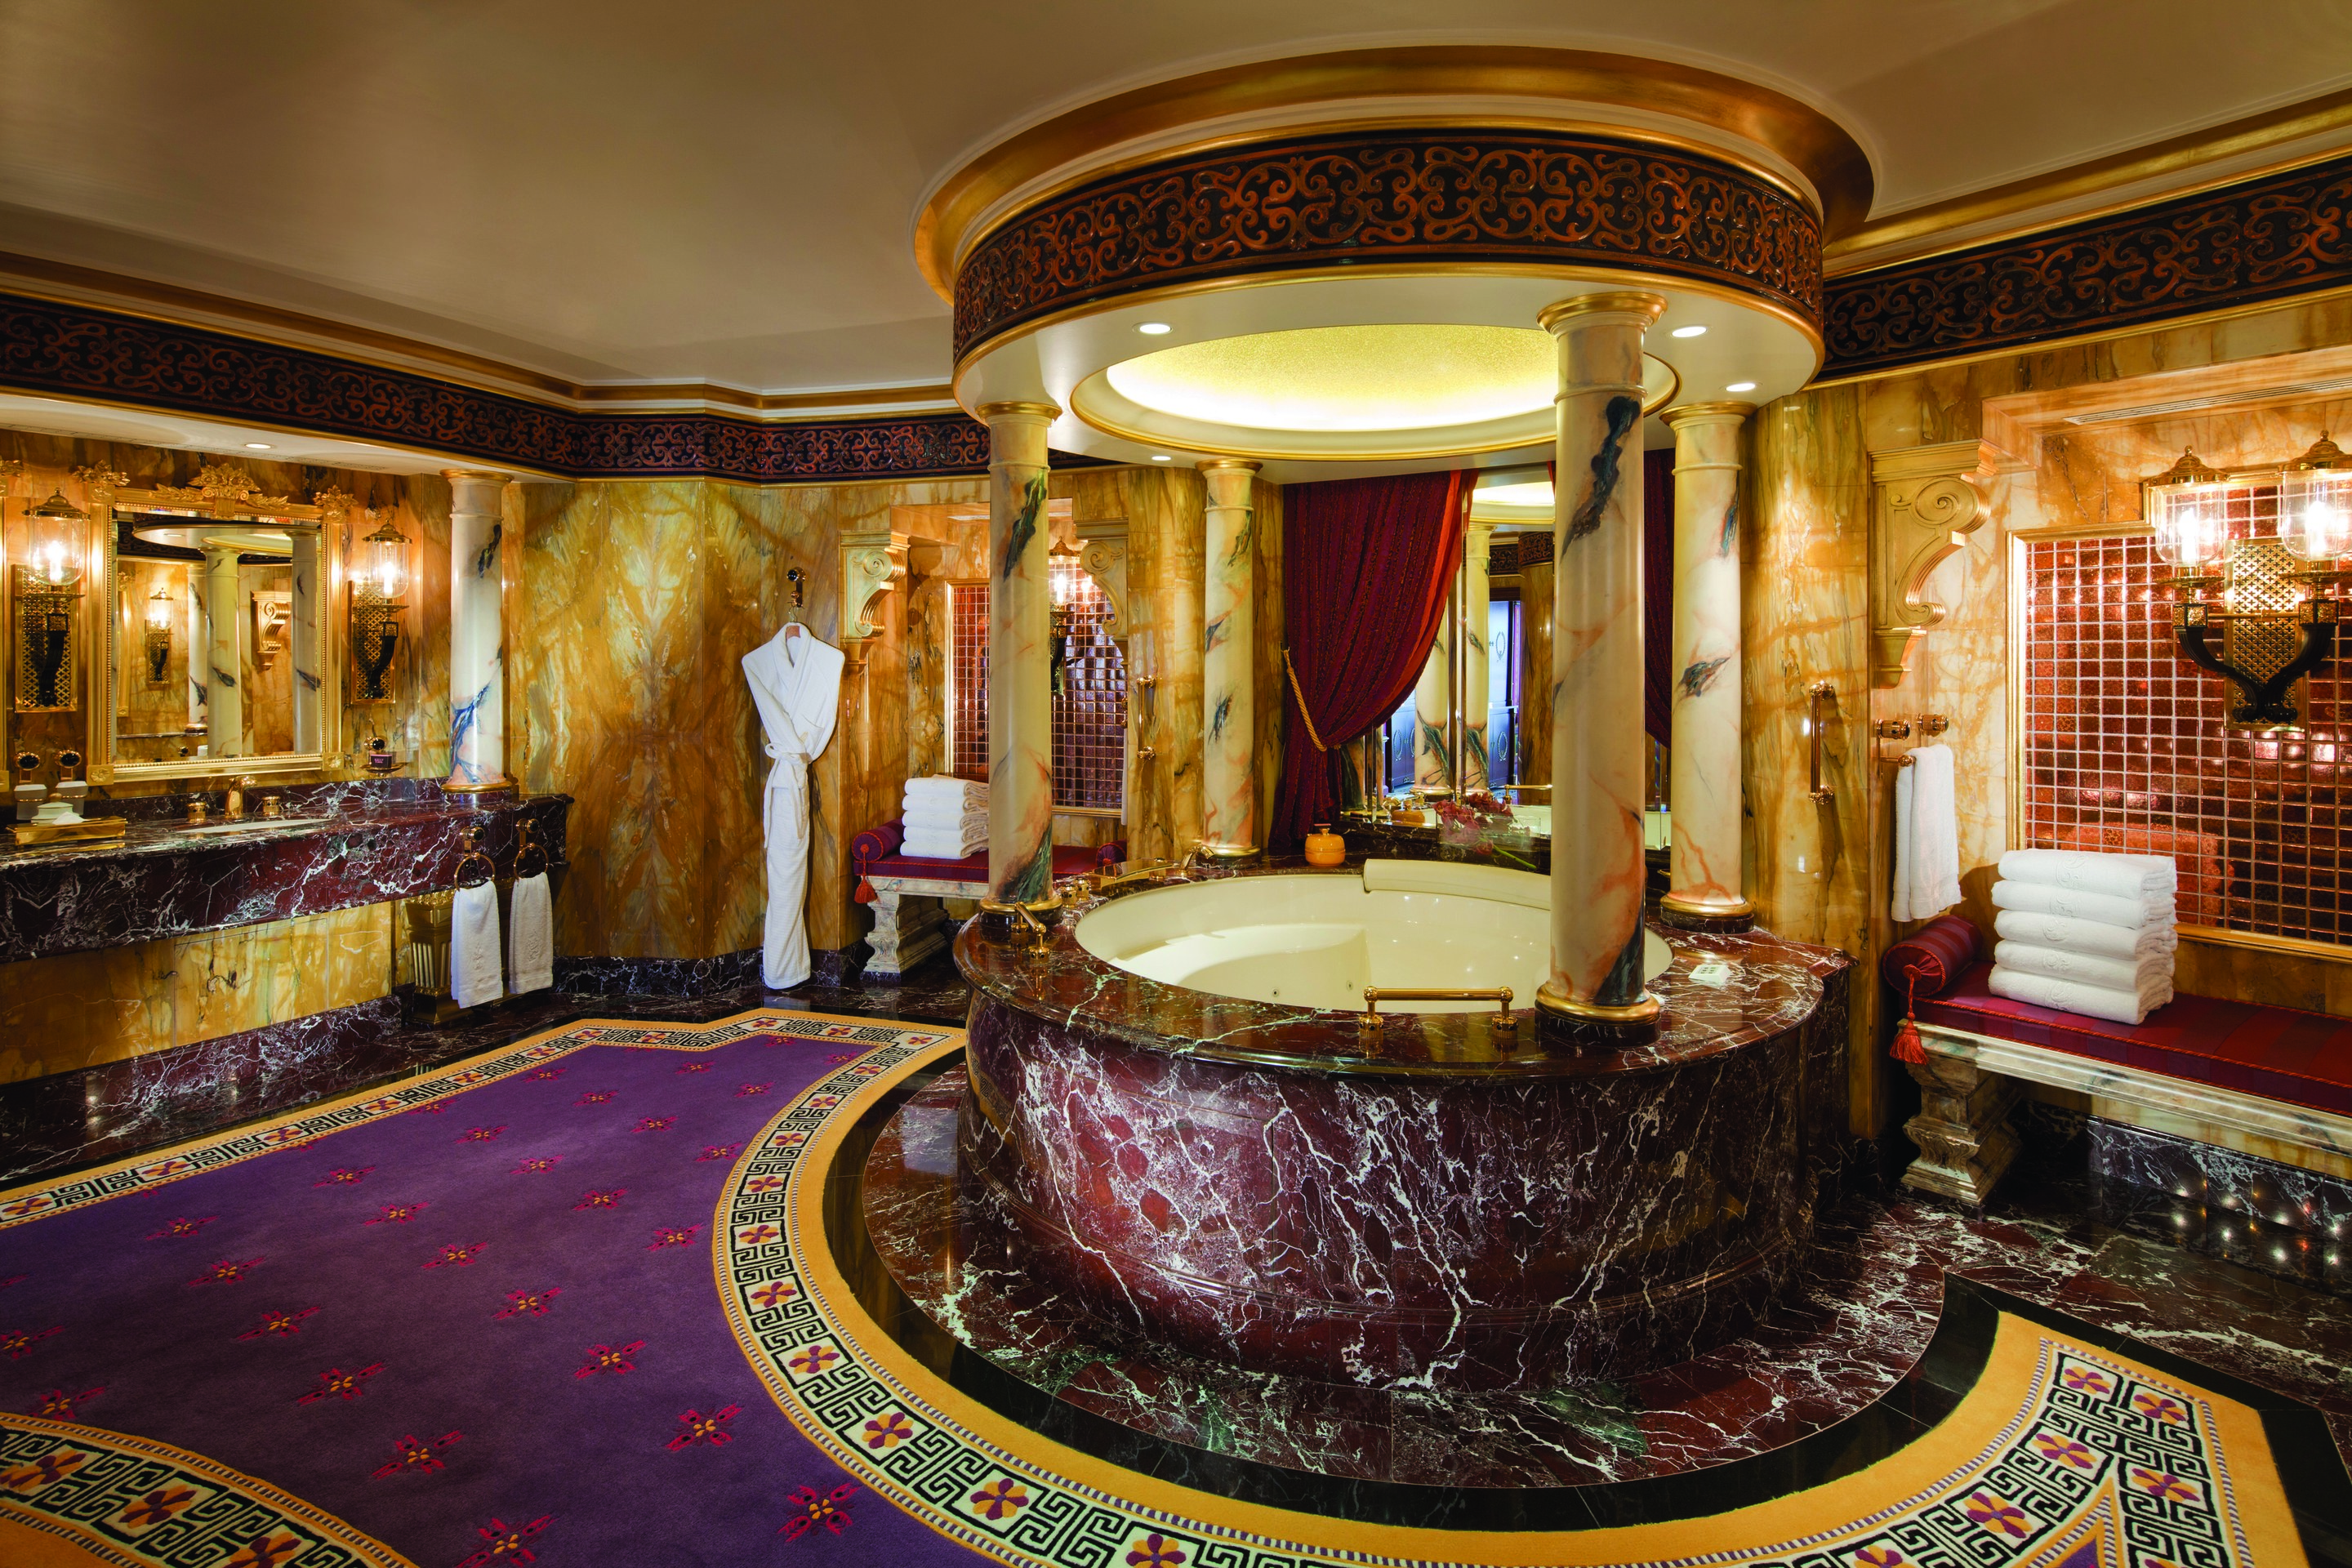 The Most Expensive And Luxurious Bathrooms Of All Time